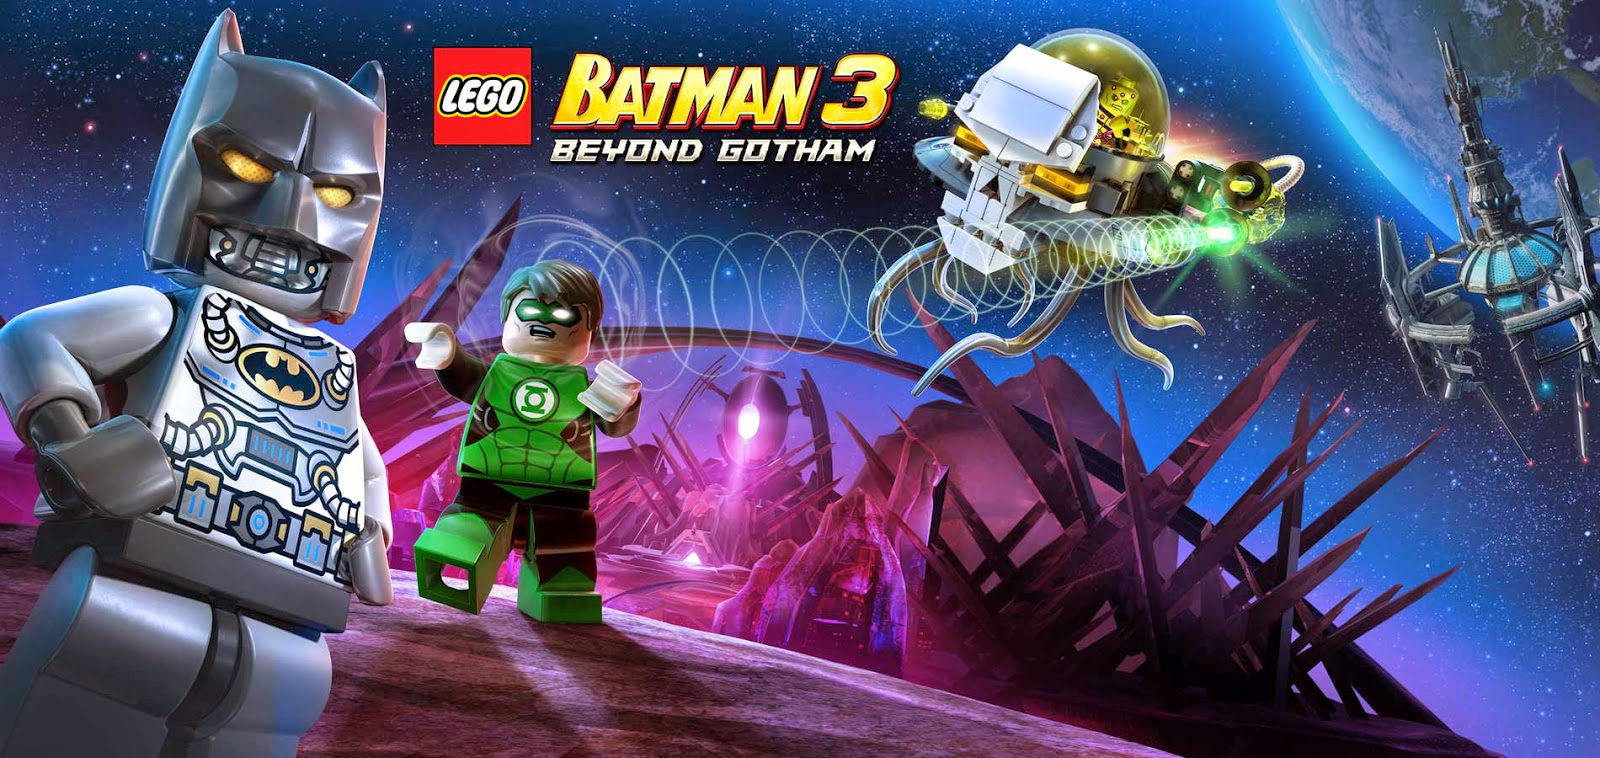 http://psgamespower.blogspot.com/2014/11/analise-ps3-lego-batman-3-beyond-gotham.html